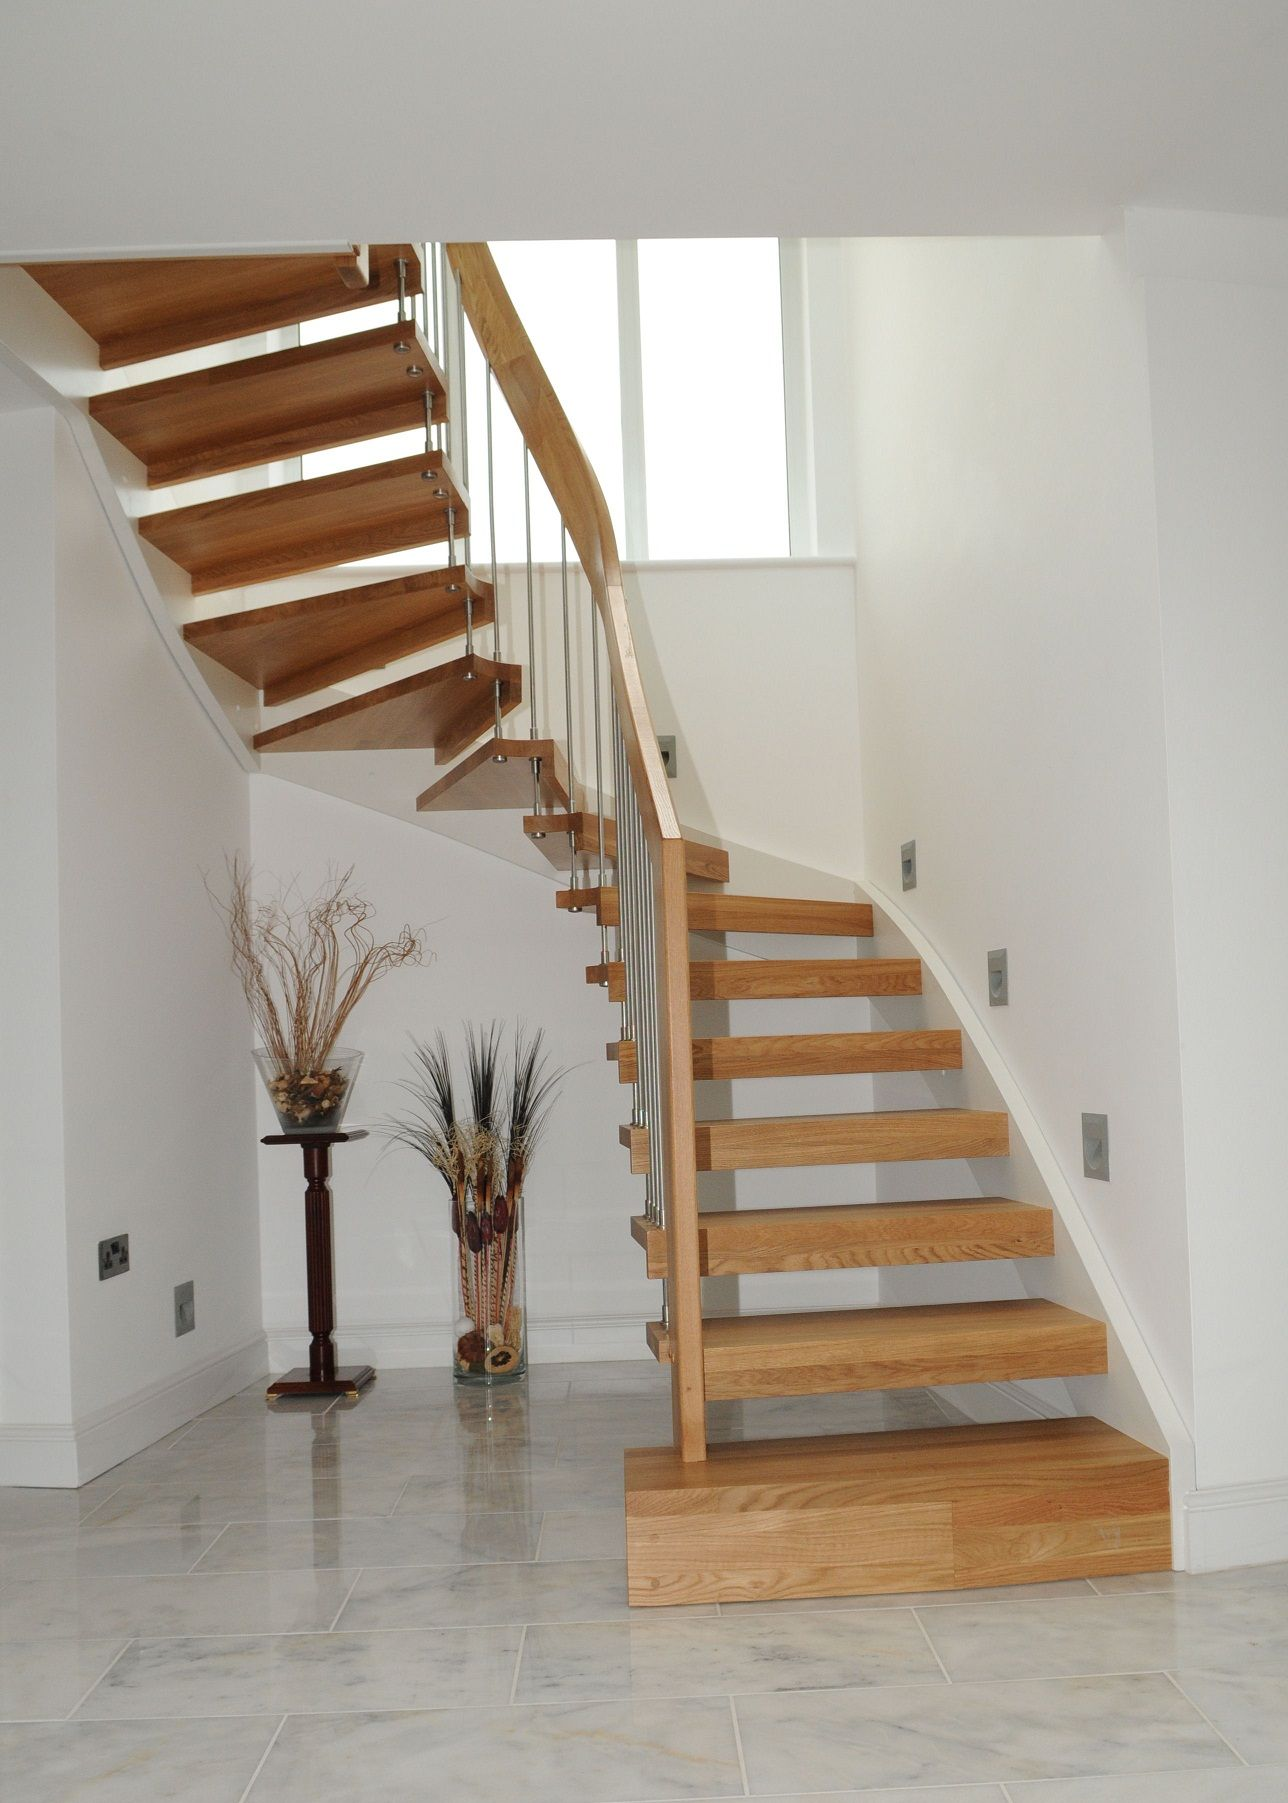 Enjoyable Curved Open Staircase With Wooden Steps Stairs As Well Three Gl Windows In White Room Modern Design